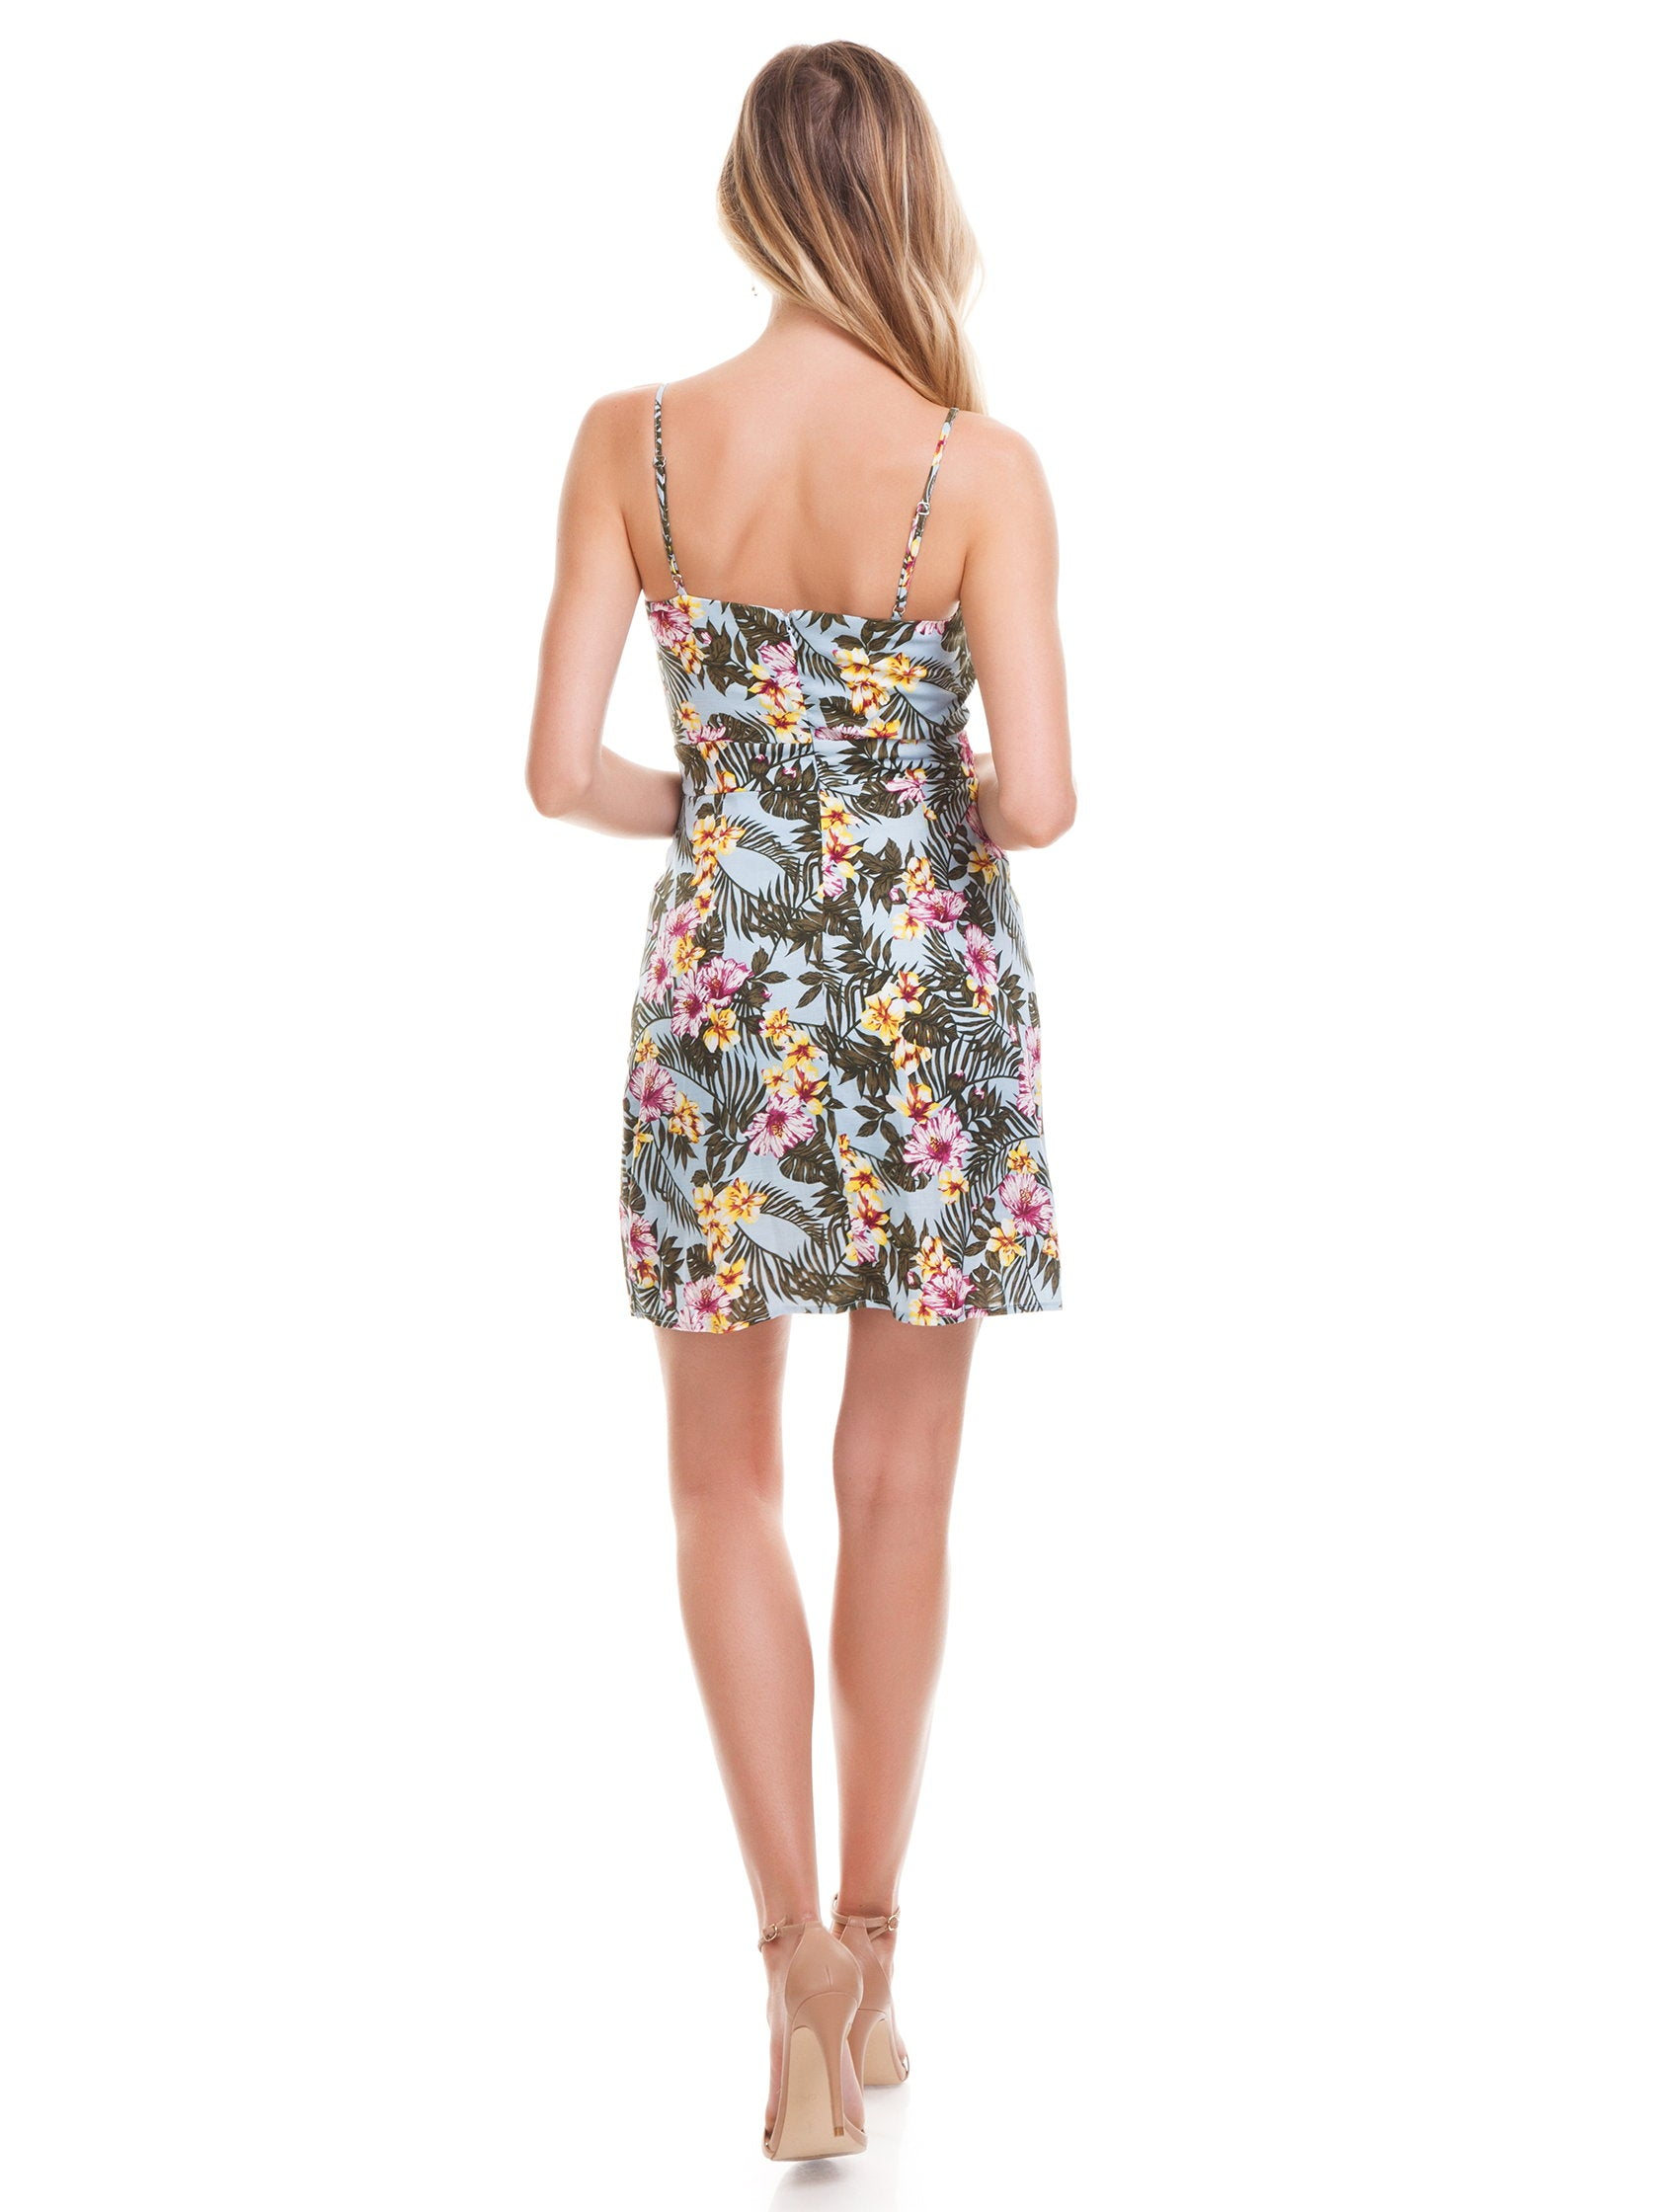 Women wearing a dress rental from J.O.A. called Tropical Print Faux Wrap Dress